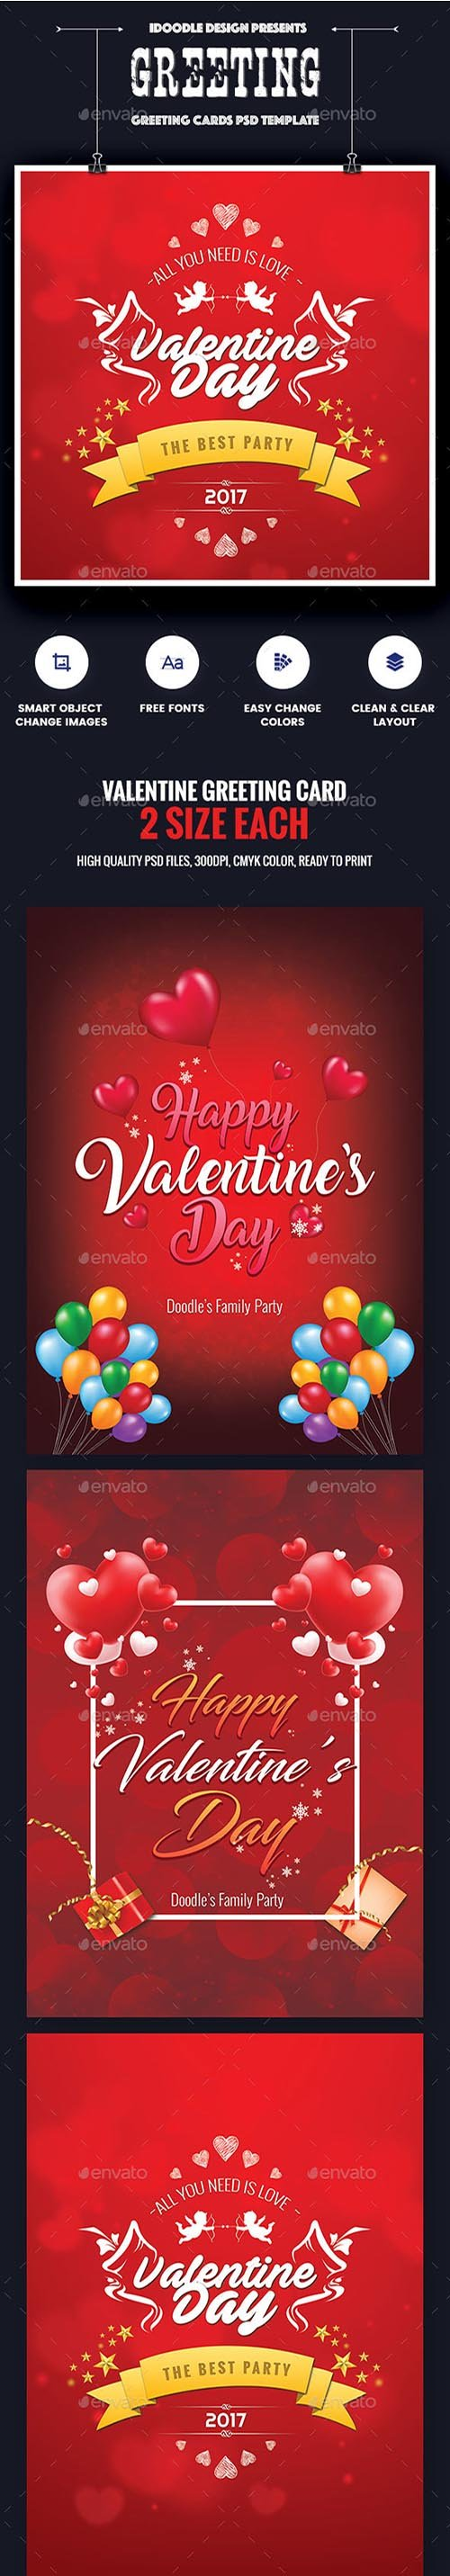 GR - Valentine Greeting Card - 06 PSD [02 Size Each - 7x5 & 5x7] 19261223